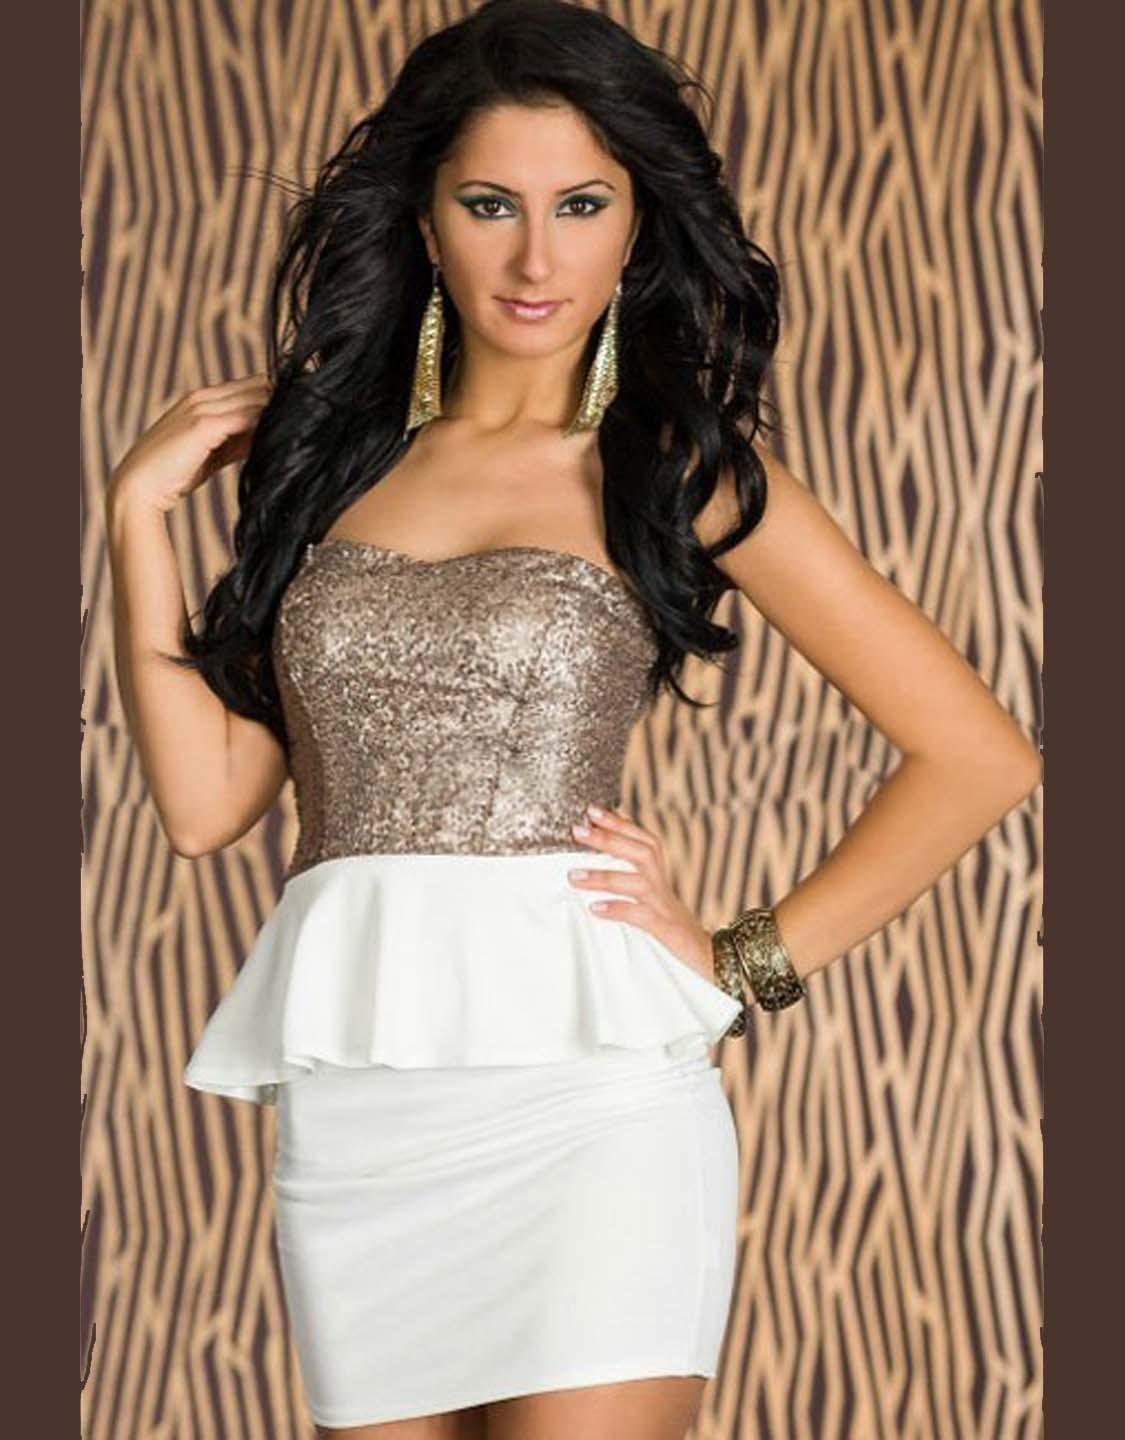 M/L Size New Fashion Sequins Strapless Peplum Design Dress With Keyhole Cut Out Back W203329A